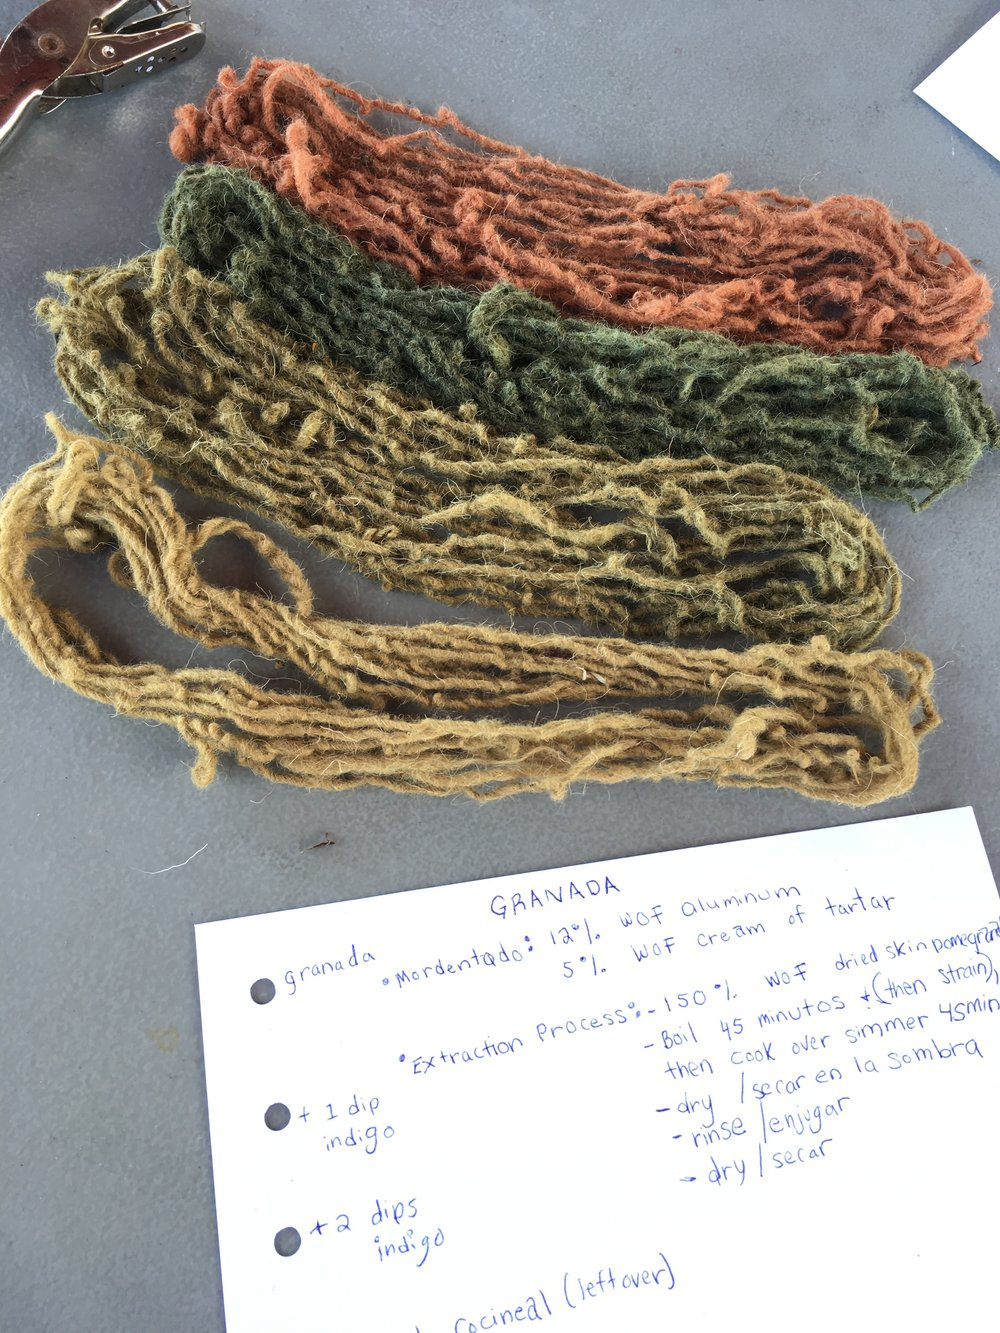 ingredient-natural-dye-class-oaxaca.JPG